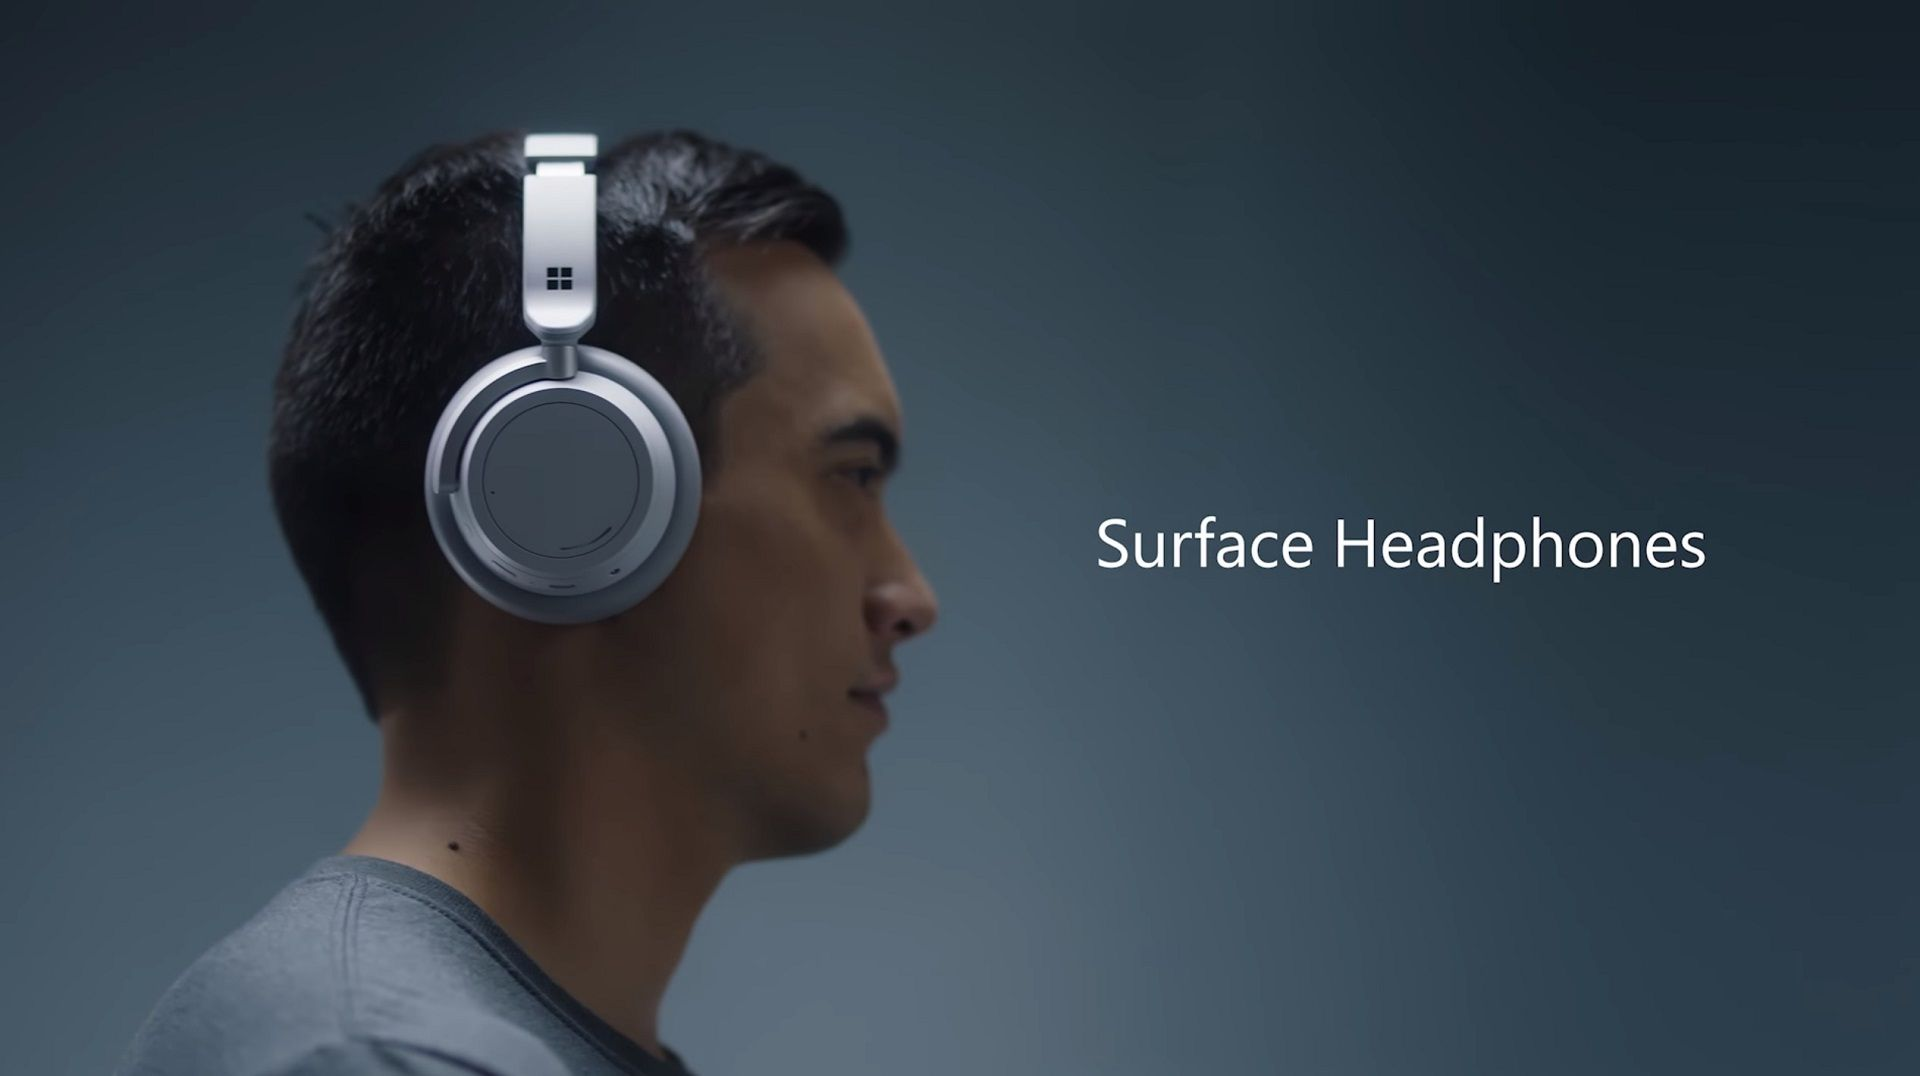 ef01b87f927 Microsoft Intros Wireless Surface Headphones With Cortana | Android ...